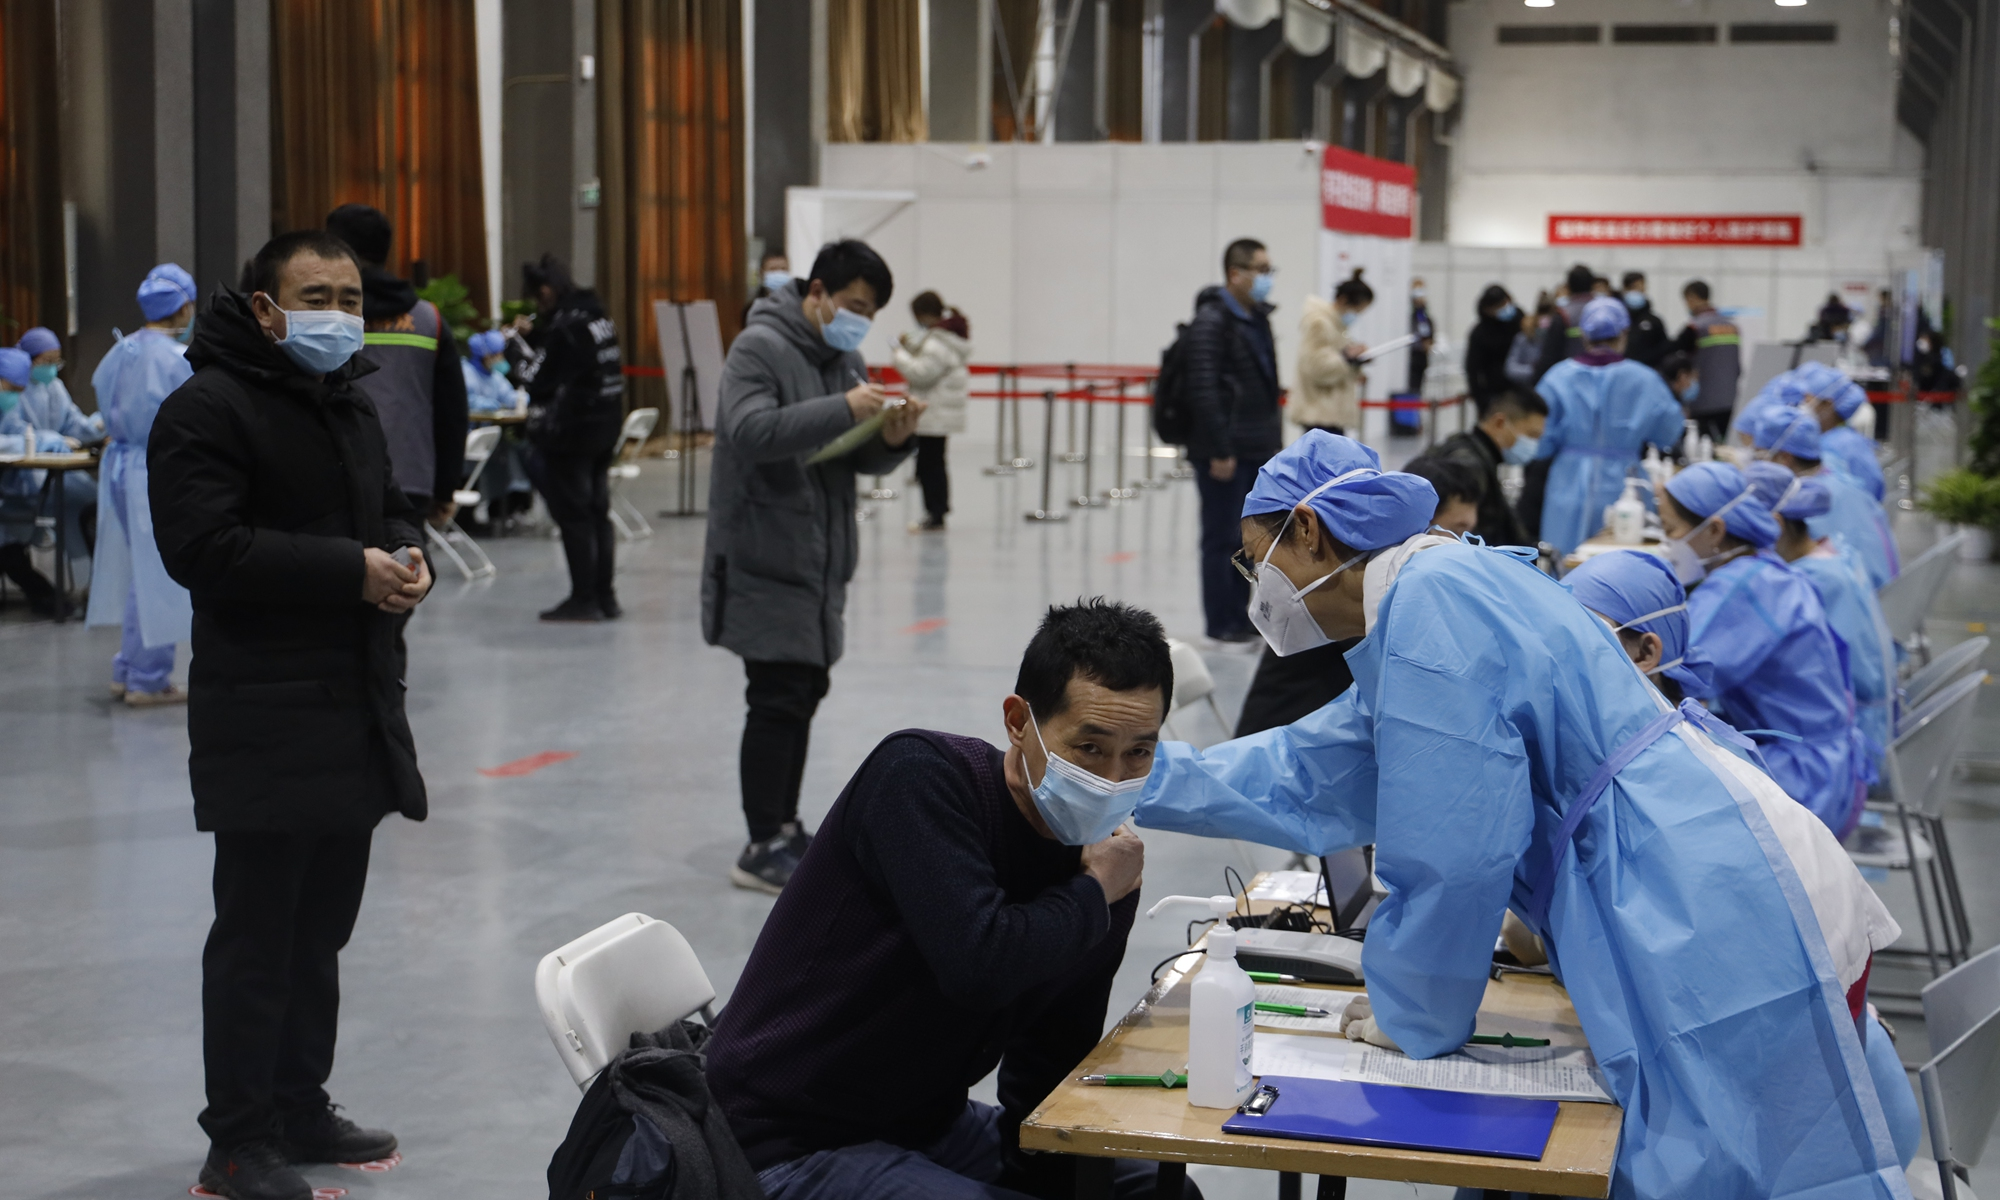 Medical workers check out people''s health condition before vaccination at a temporary vaccination site in Chaoyang district, Beijing, on Monday. Photo: Li Hao/GT